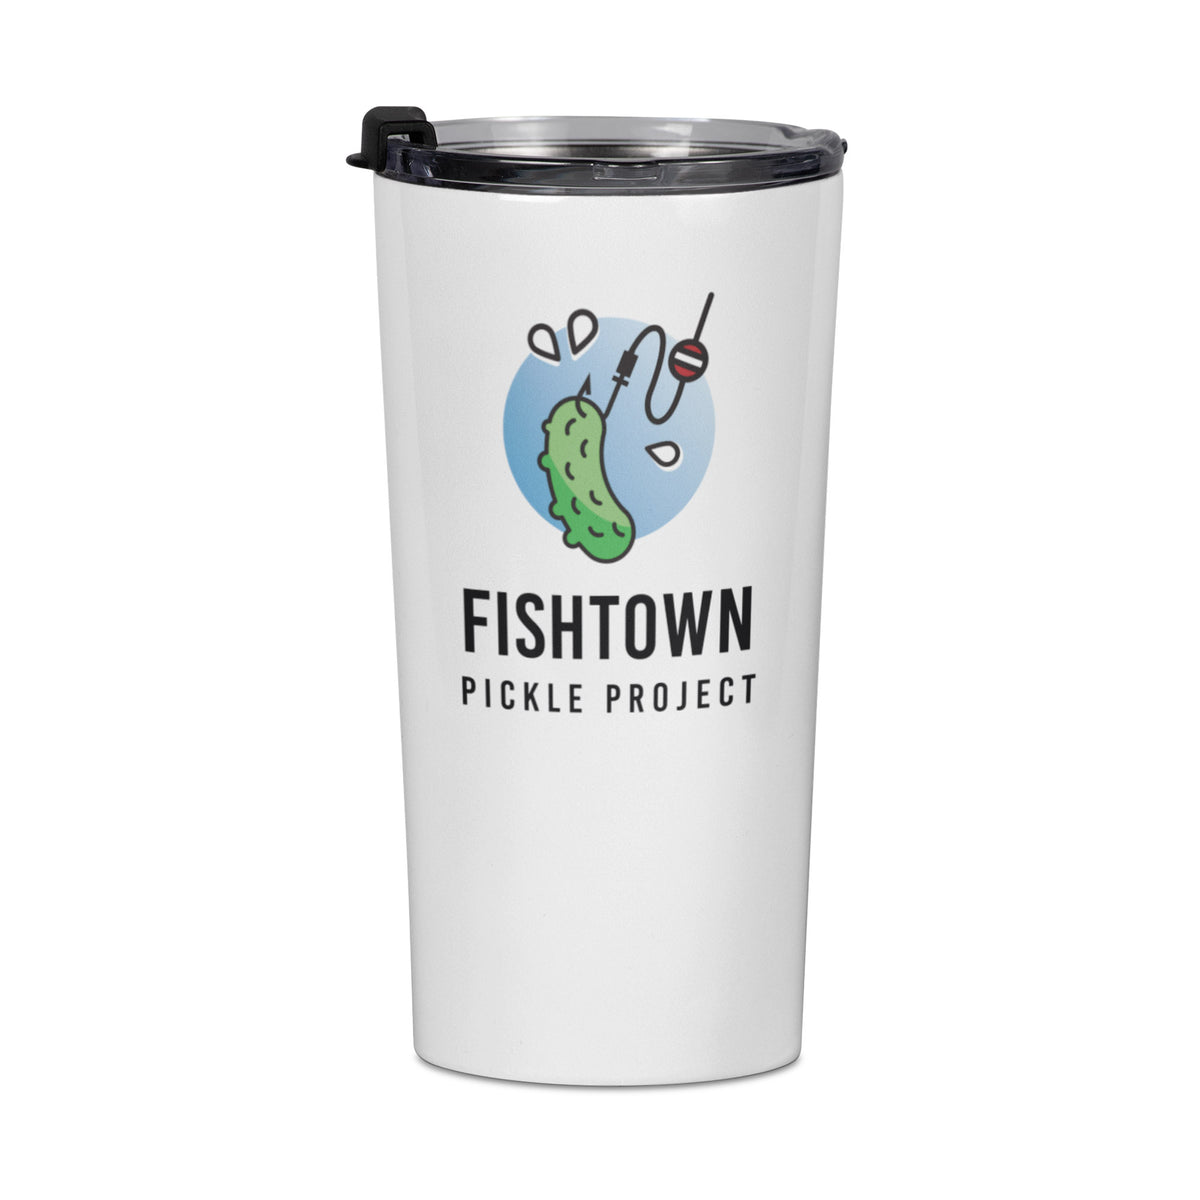 Fishtown Pickle Project We Support PA Travel Mug